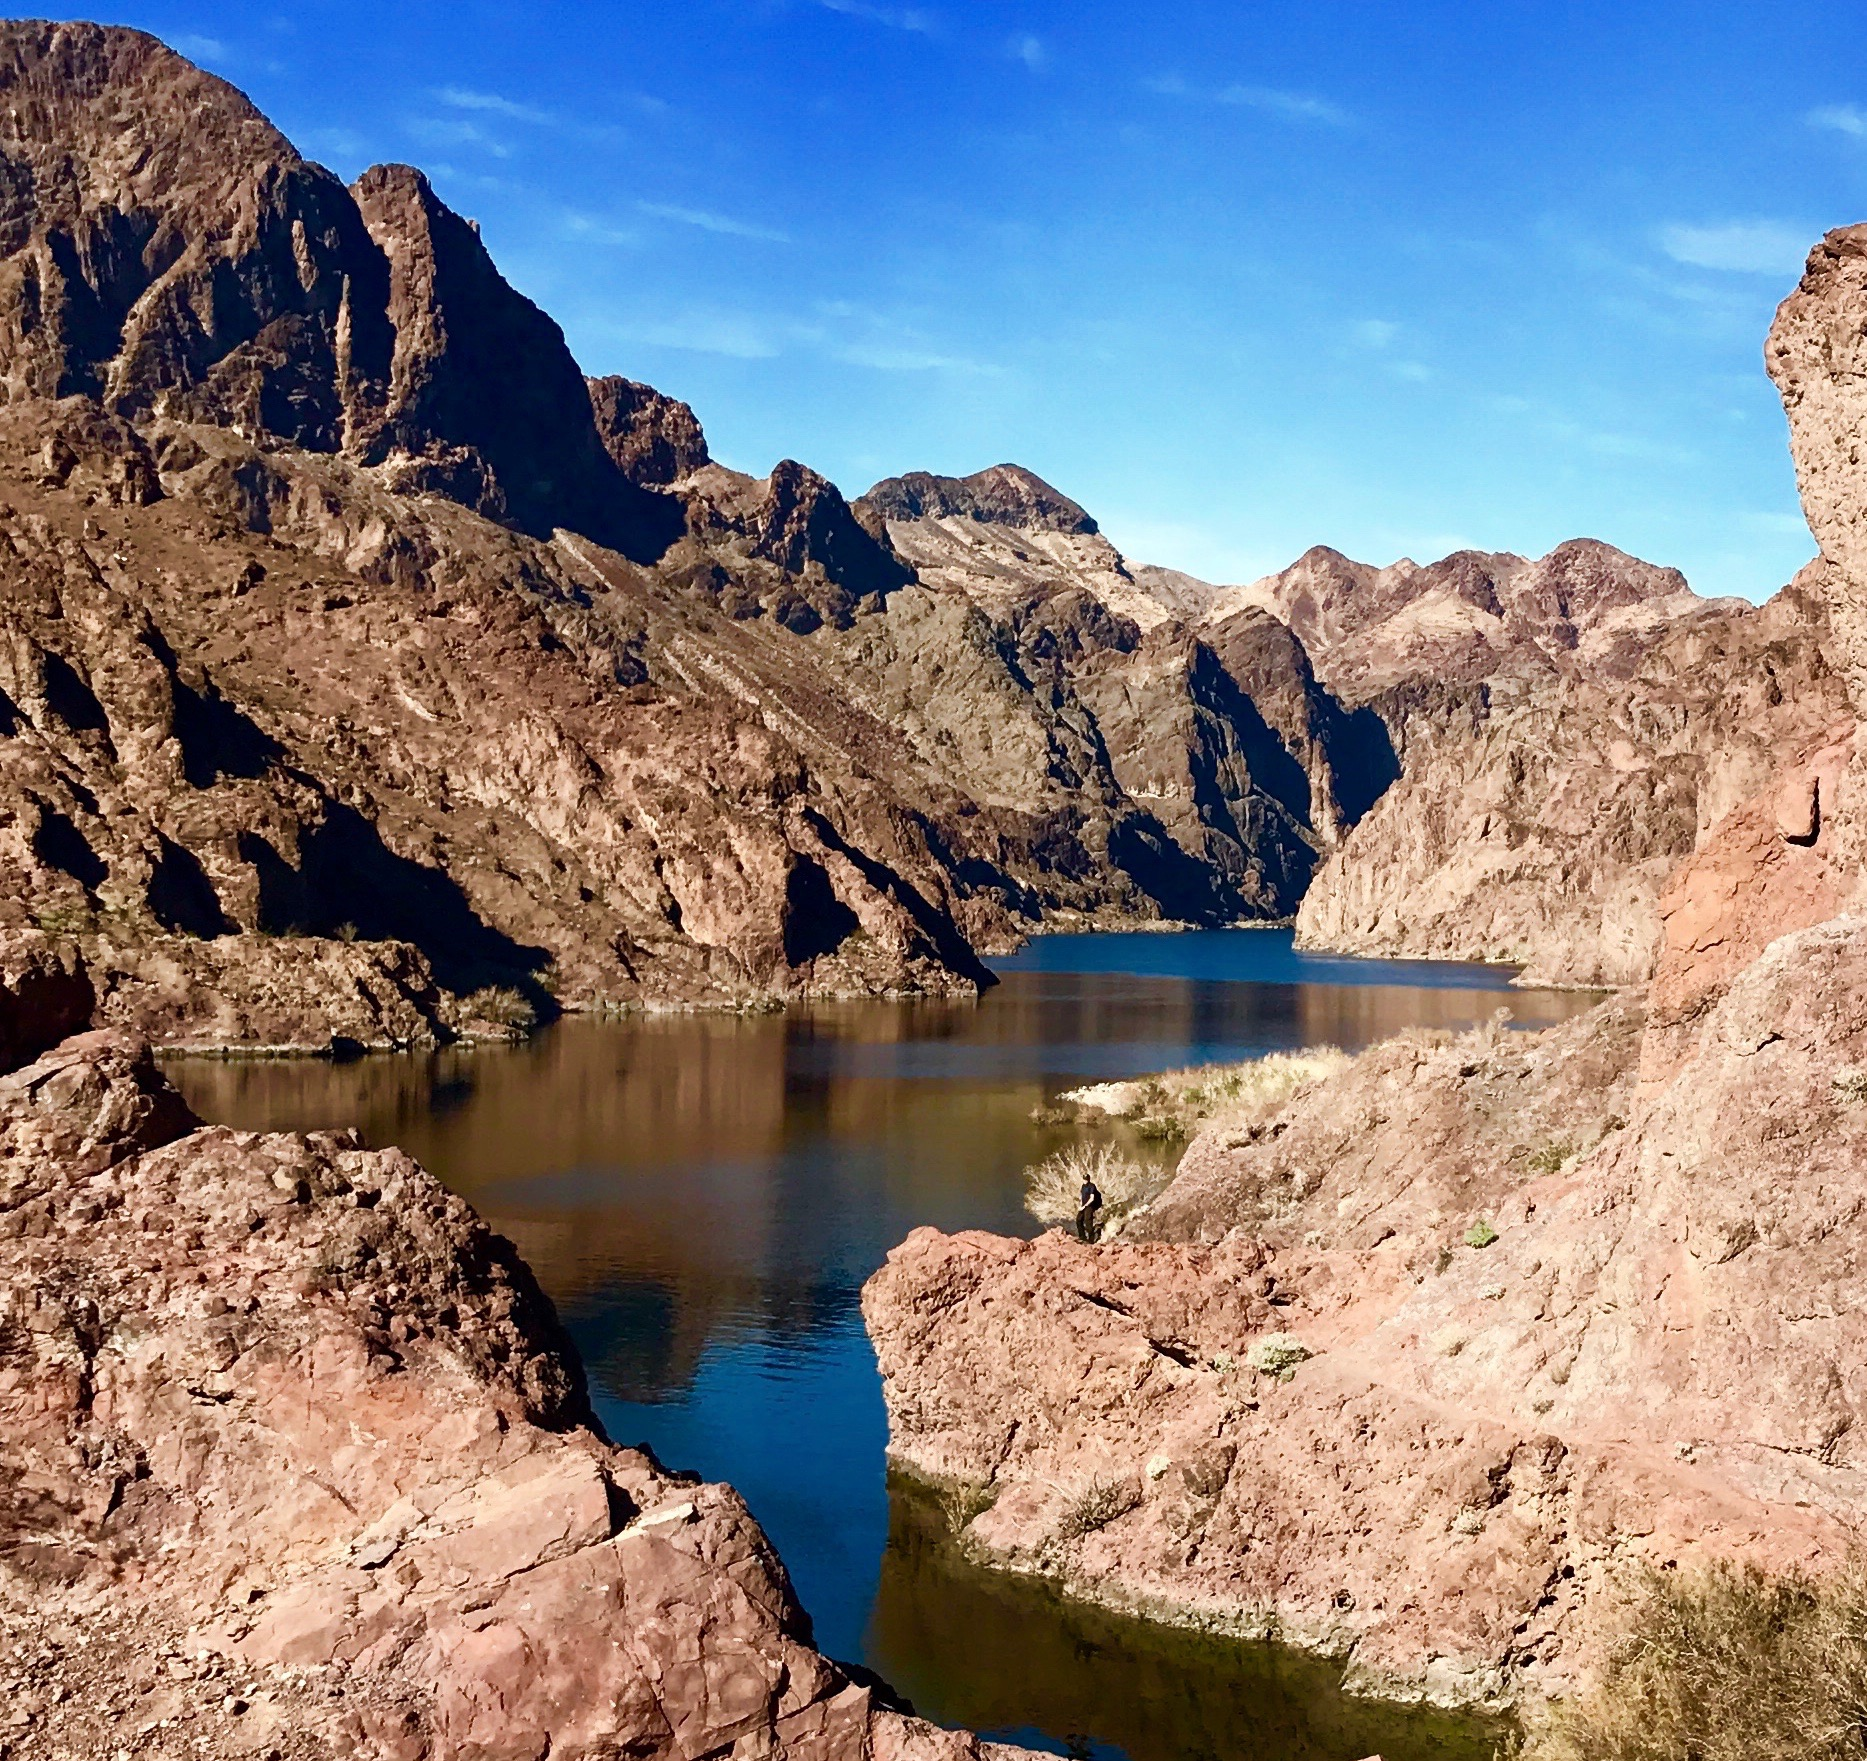 Lake Mead Nat'l Recreation Area